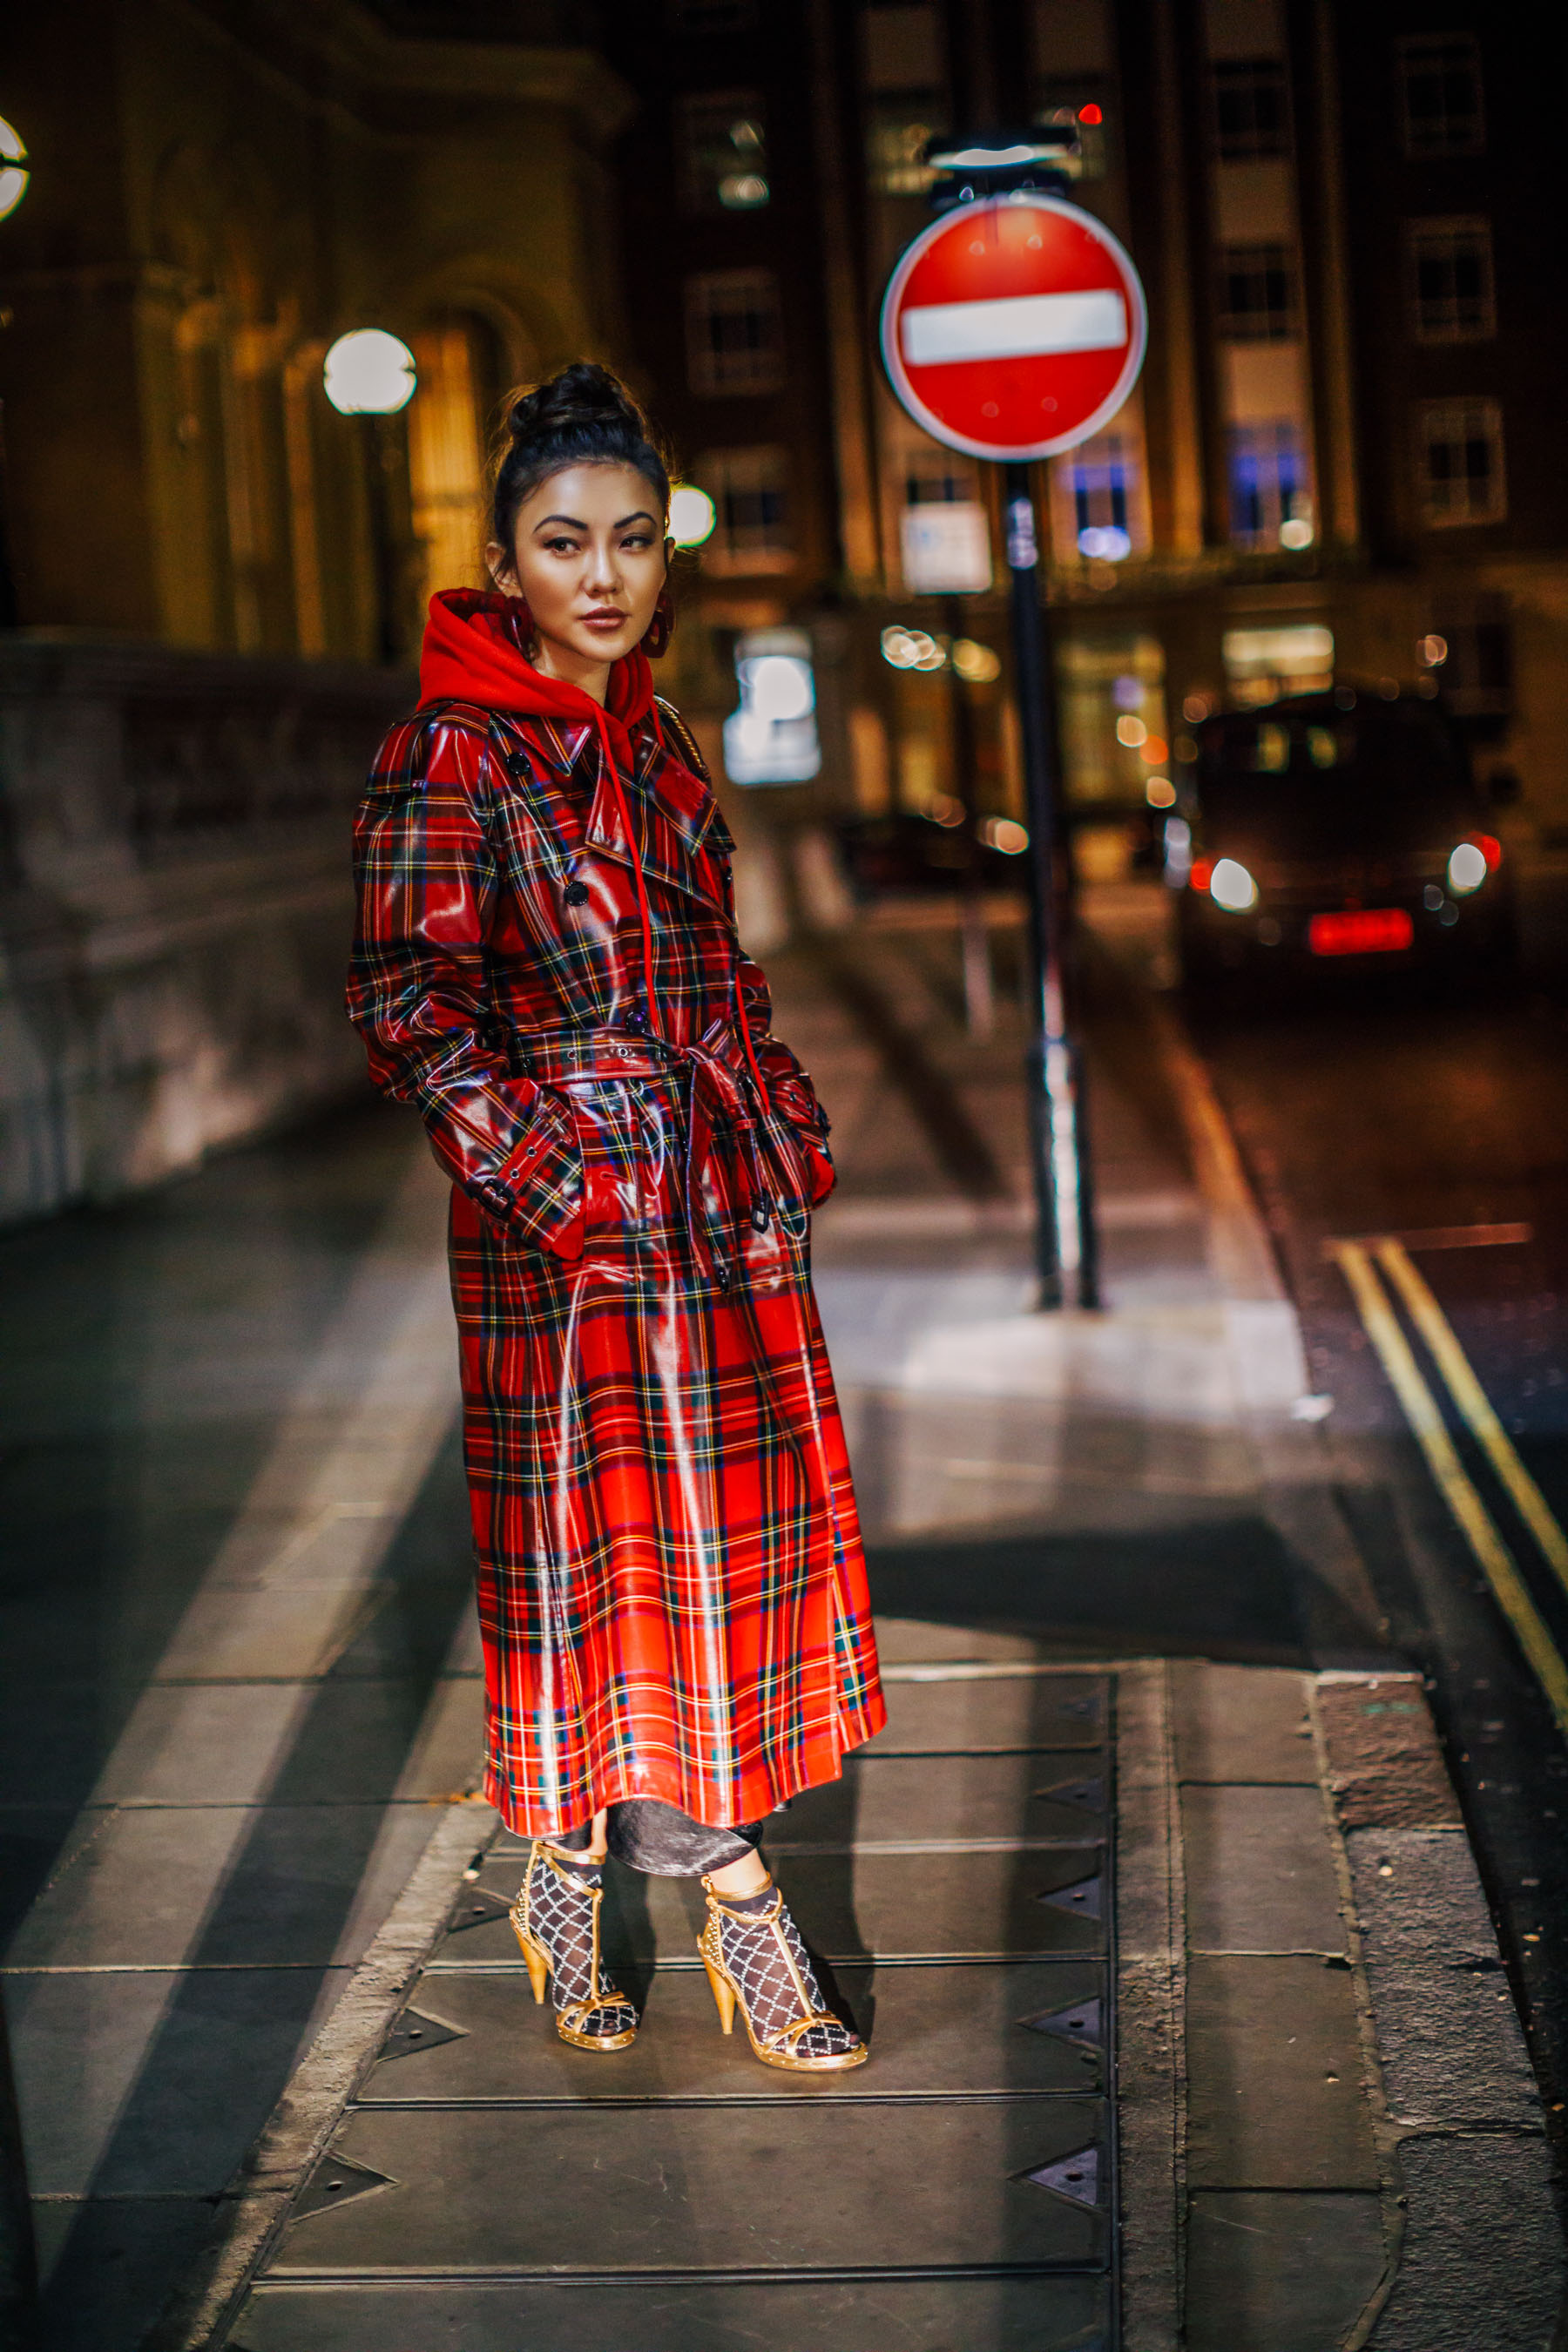 London Fashion Week Recap - burberry trench coat, socks with sandals // Notjessfashion.com